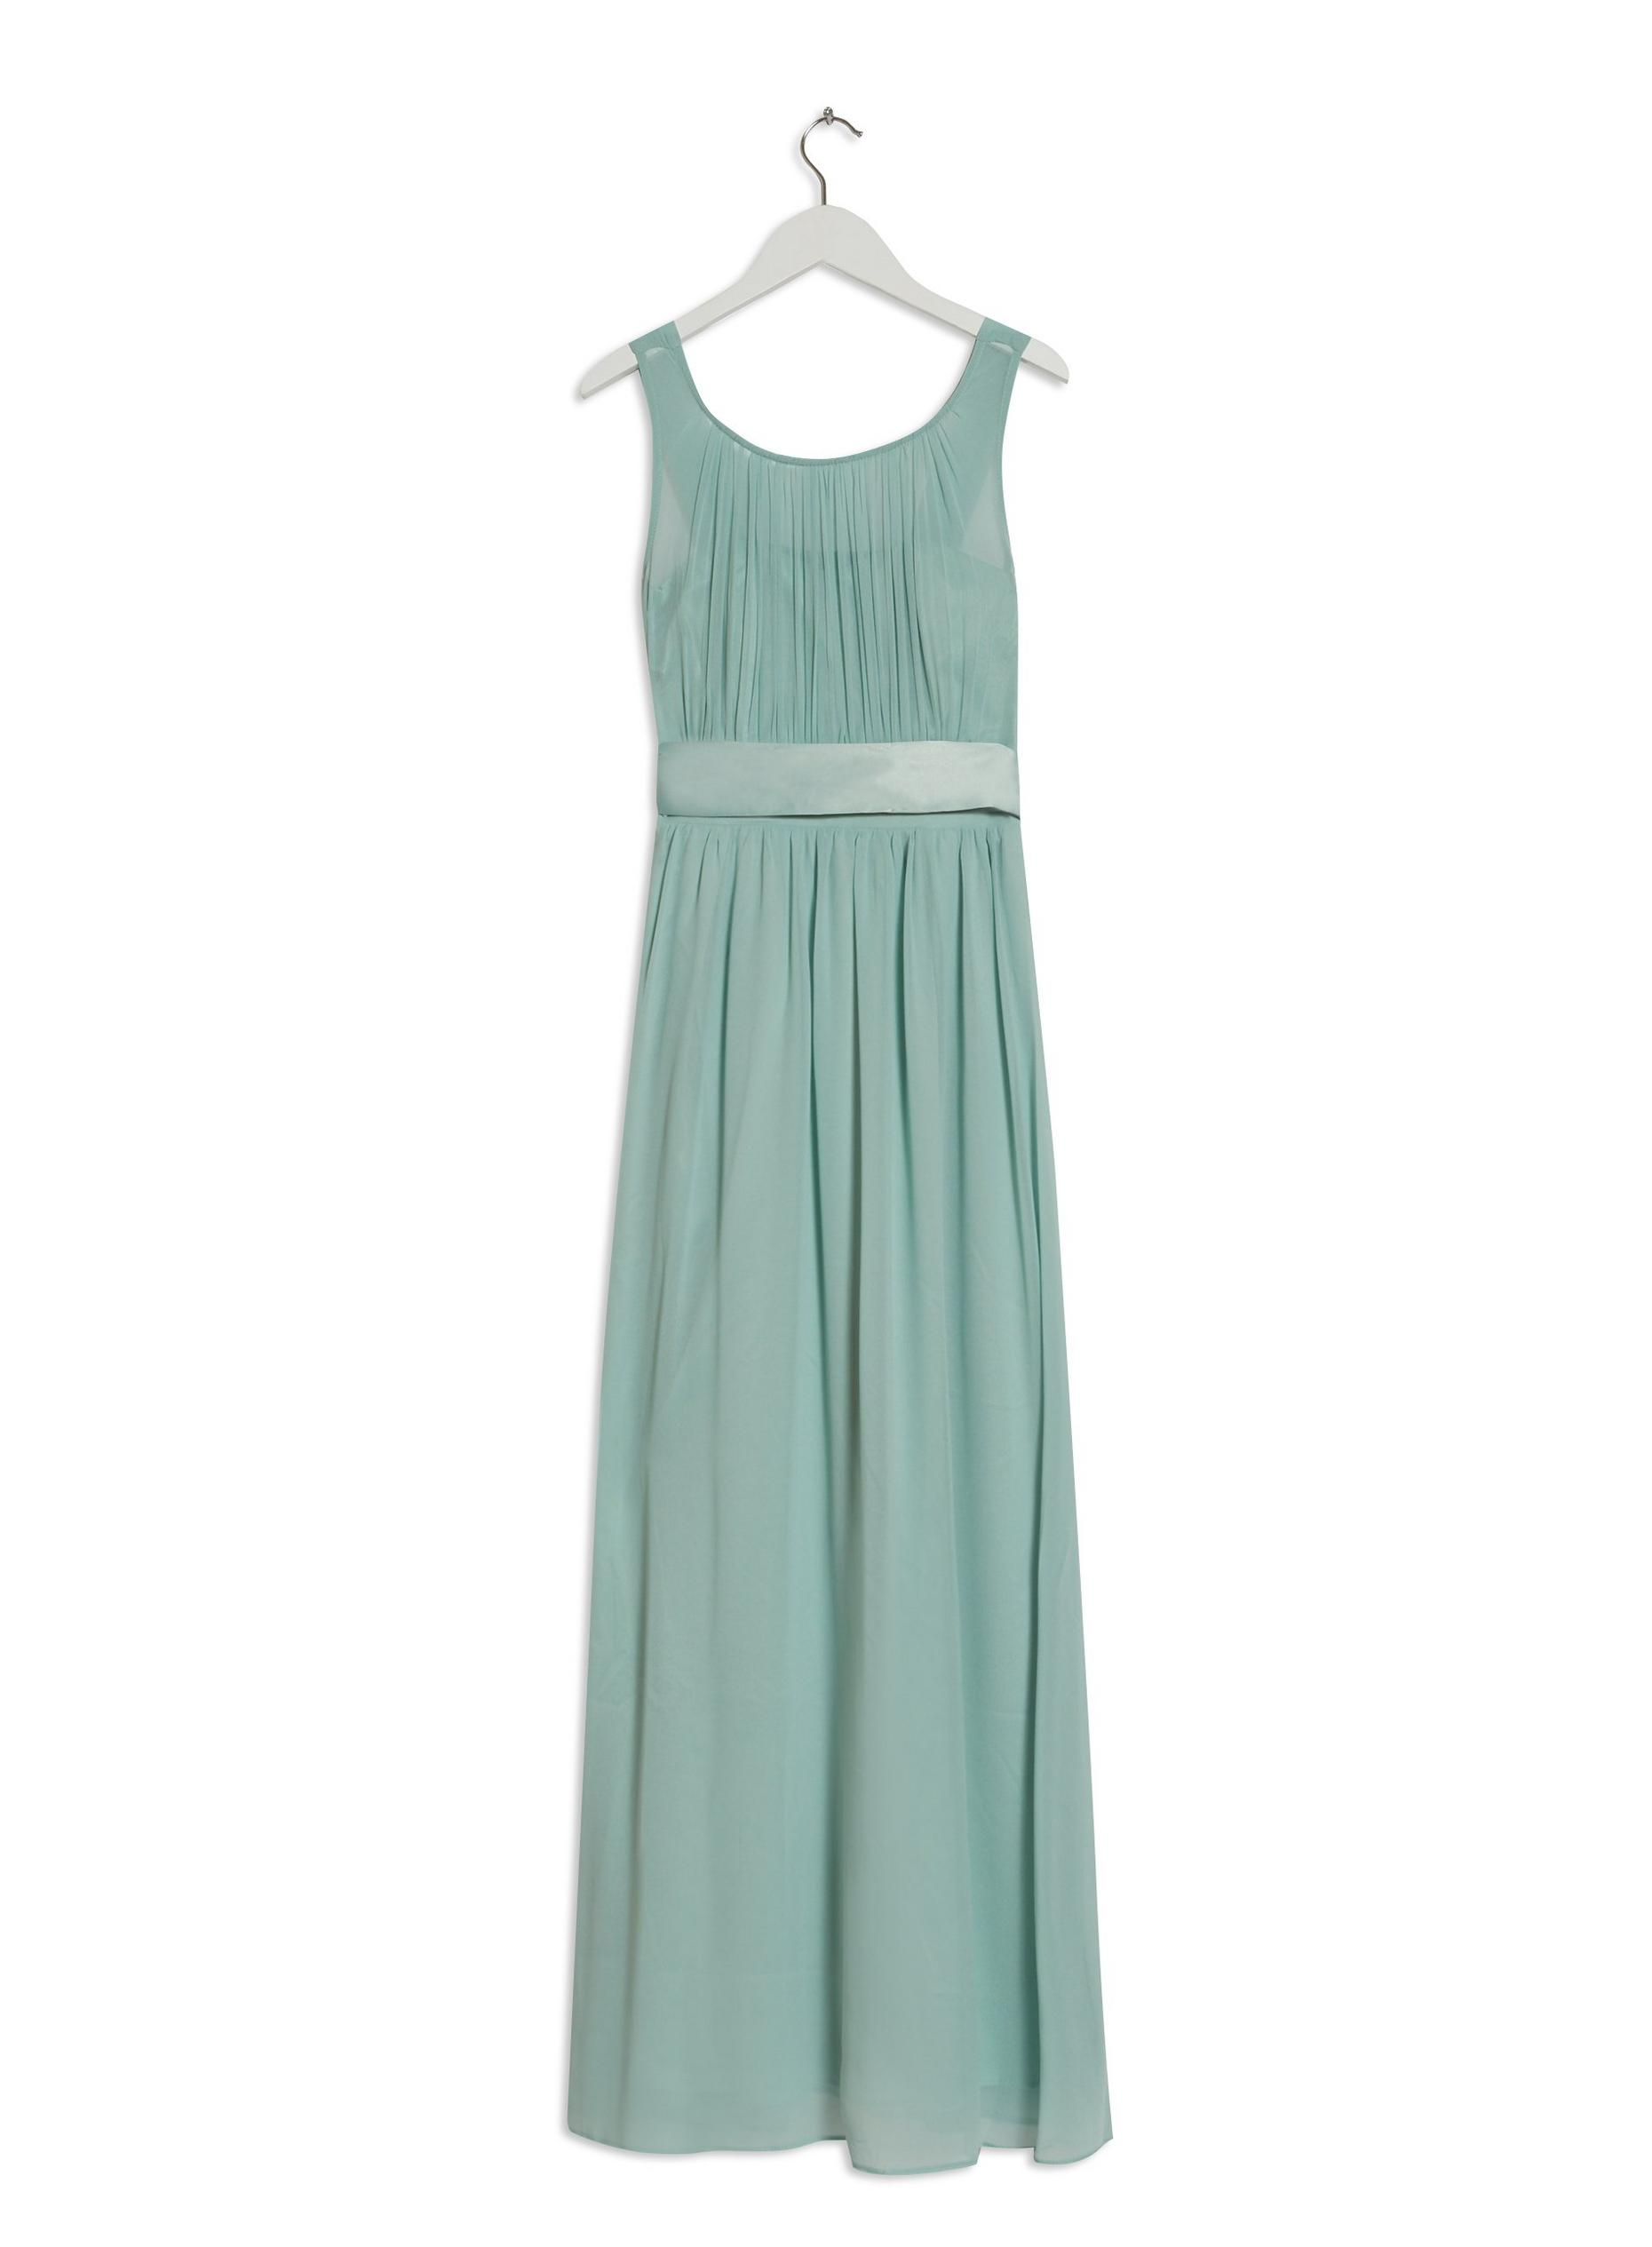 Natalie Thyme Green Maxi Dress